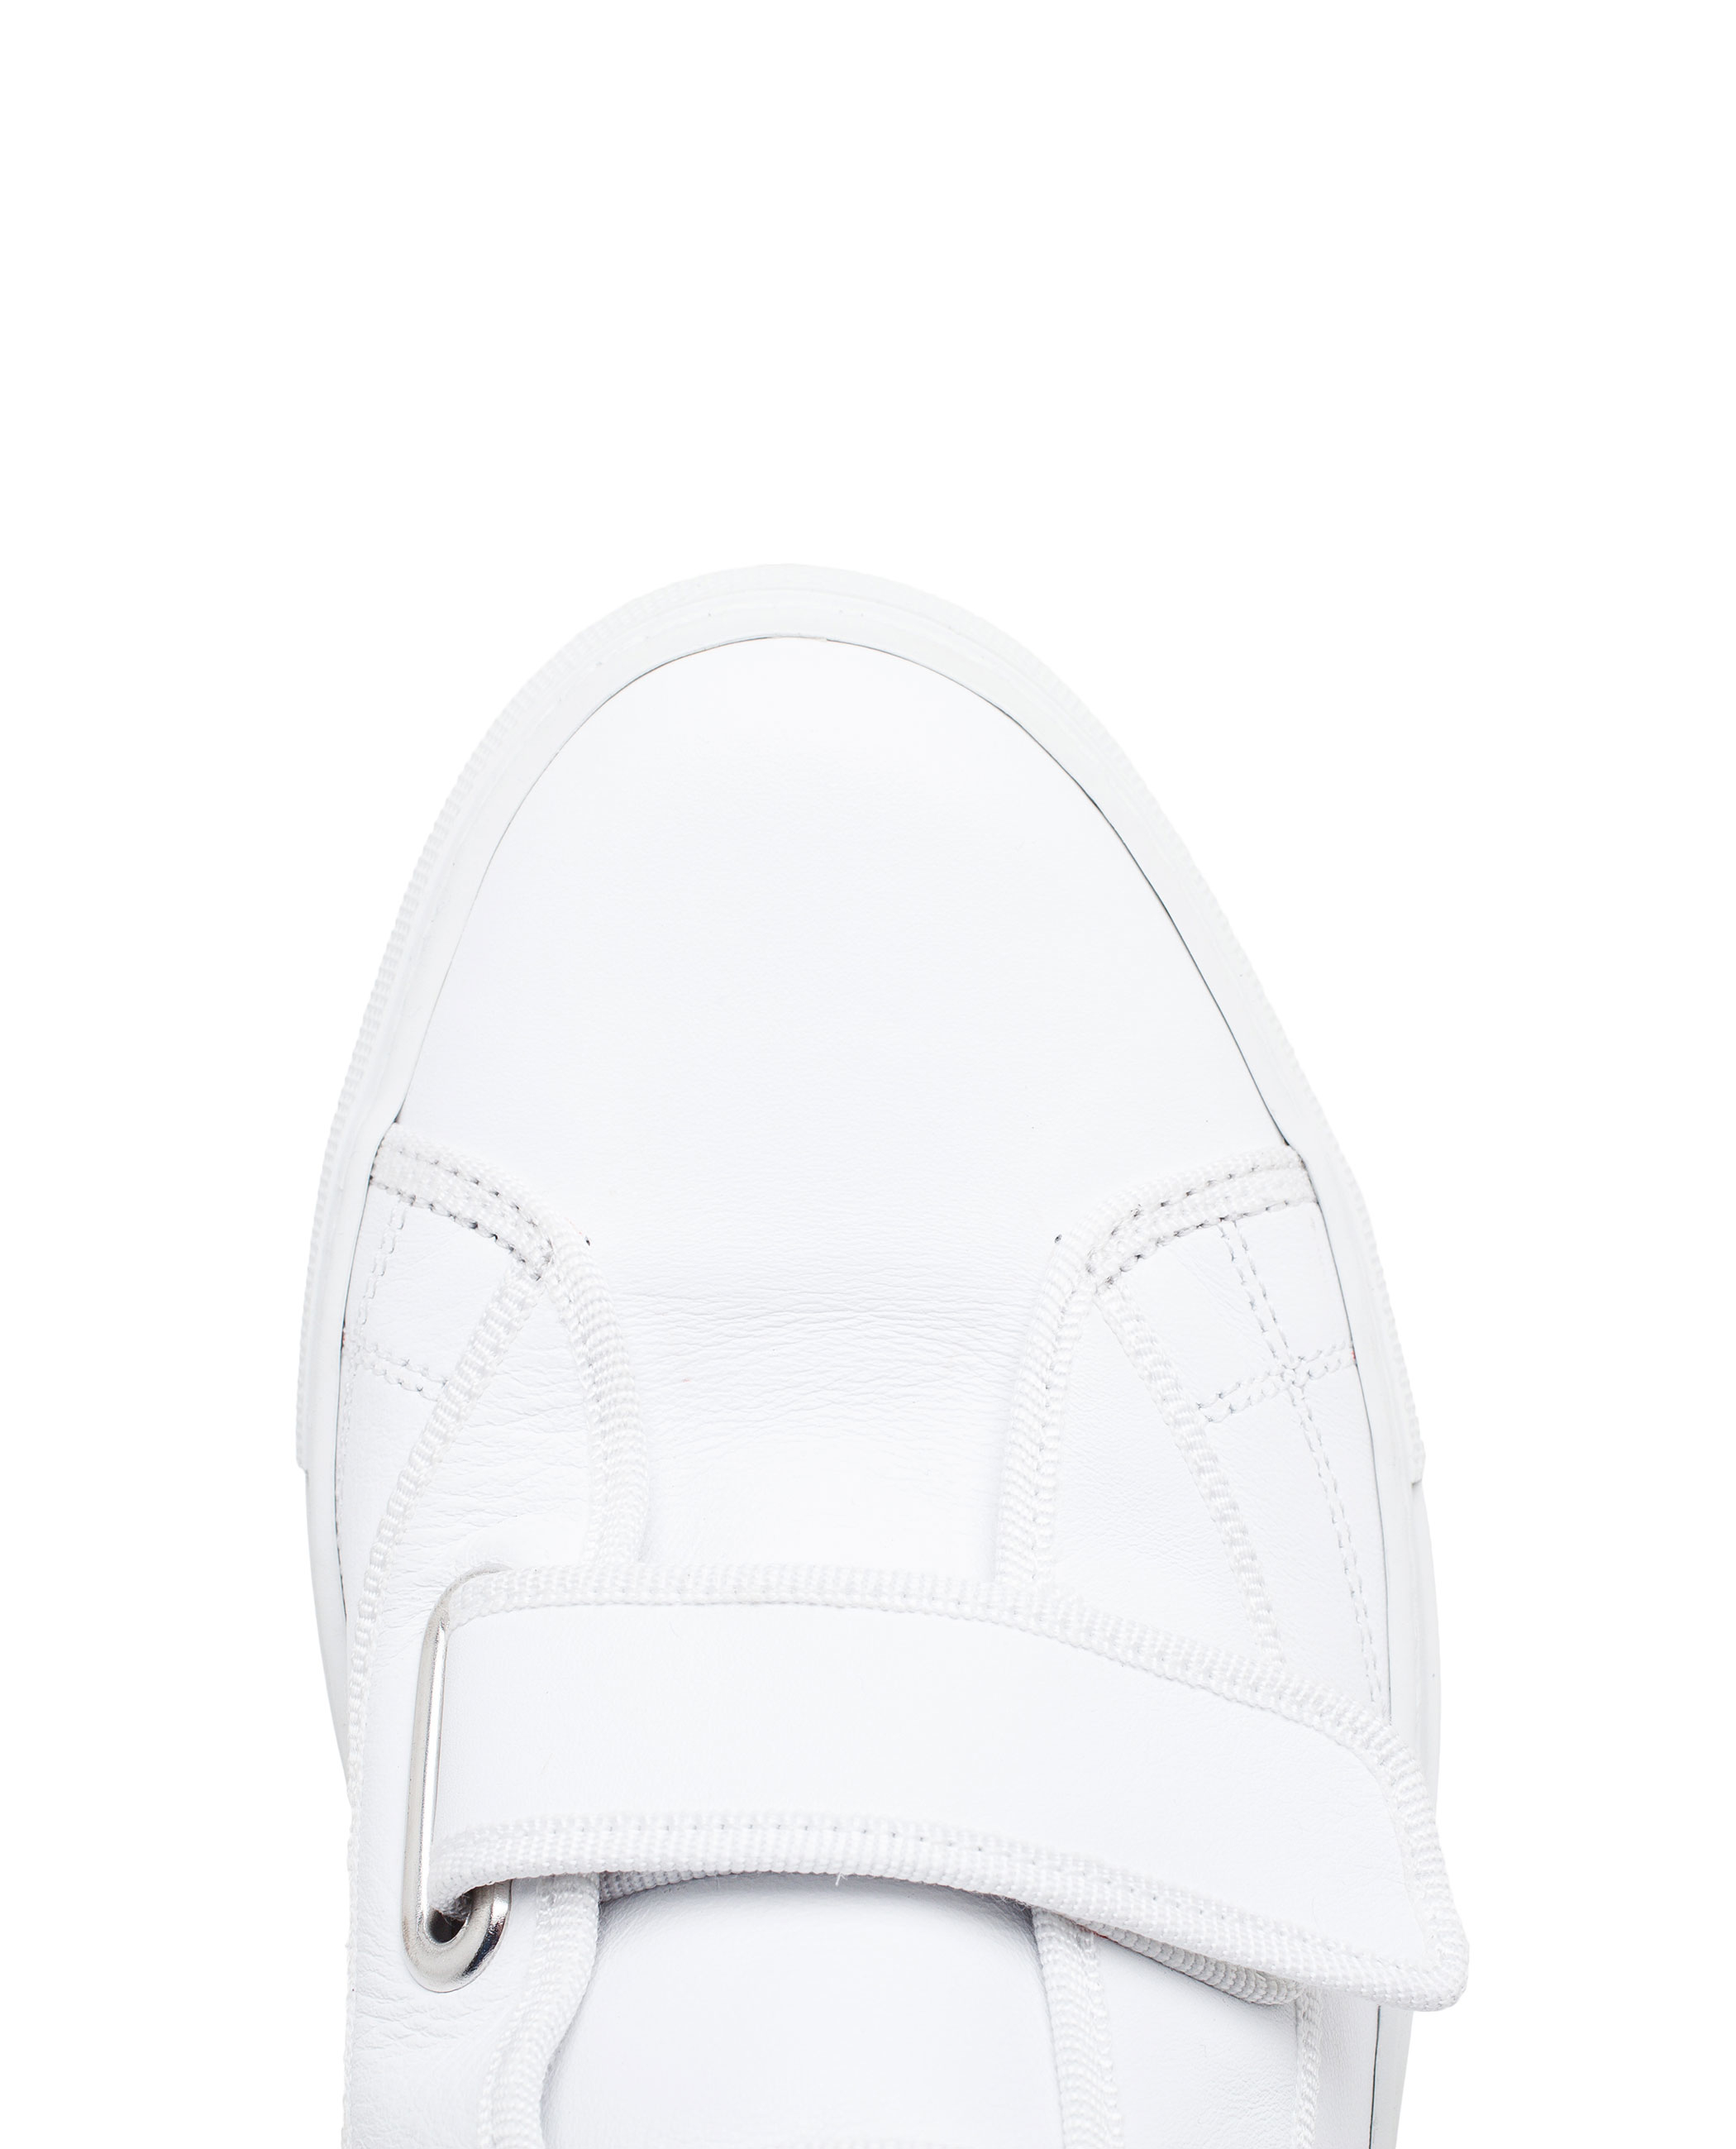 Raf simons White Leather High-tops in White for Men